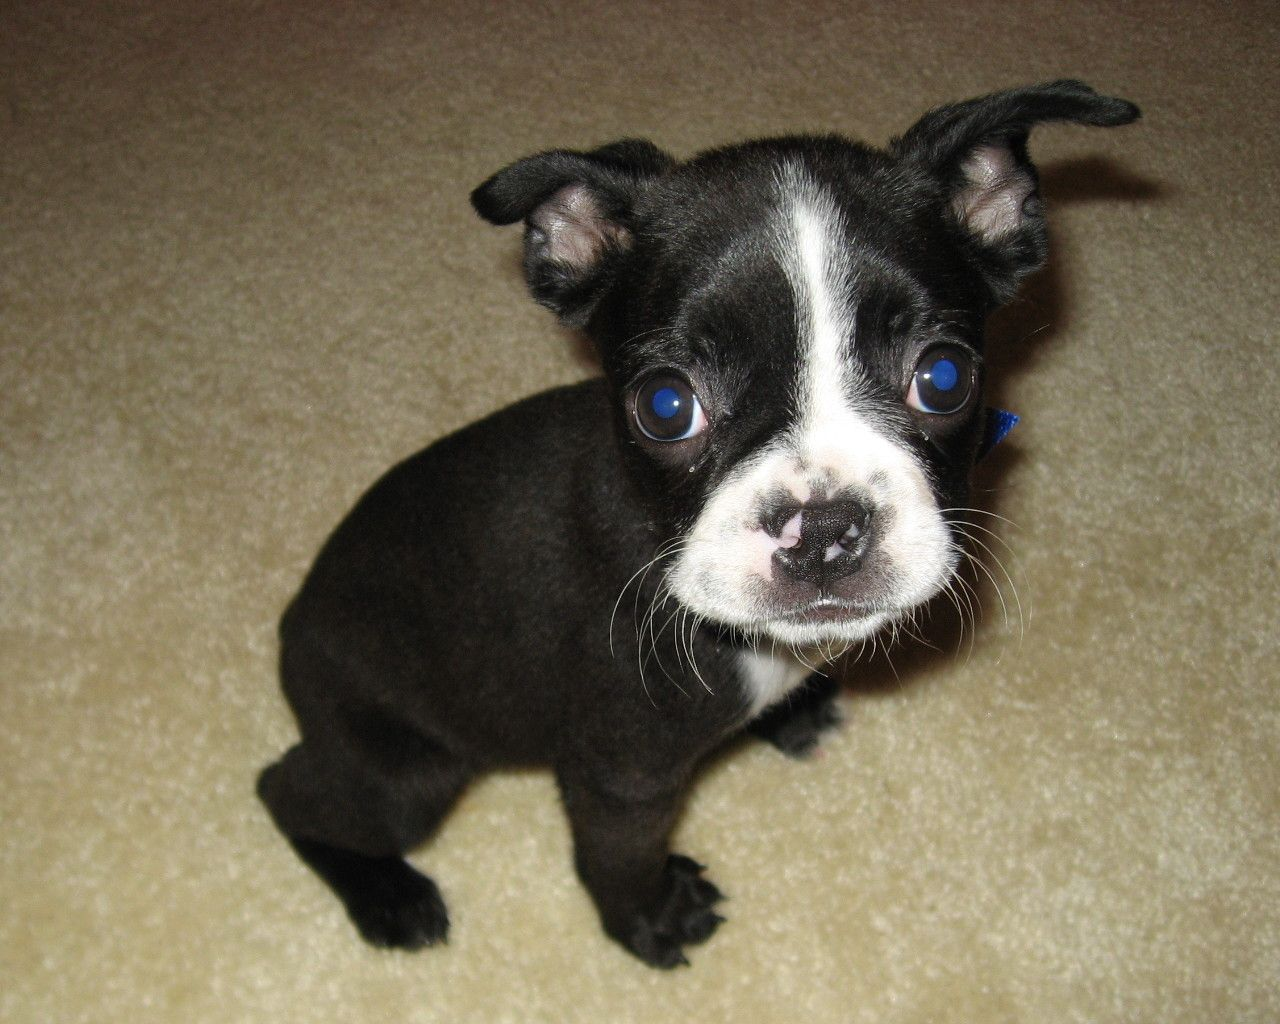 File:Boston Terrier Puppy Zoya.jpg - Wikipedia